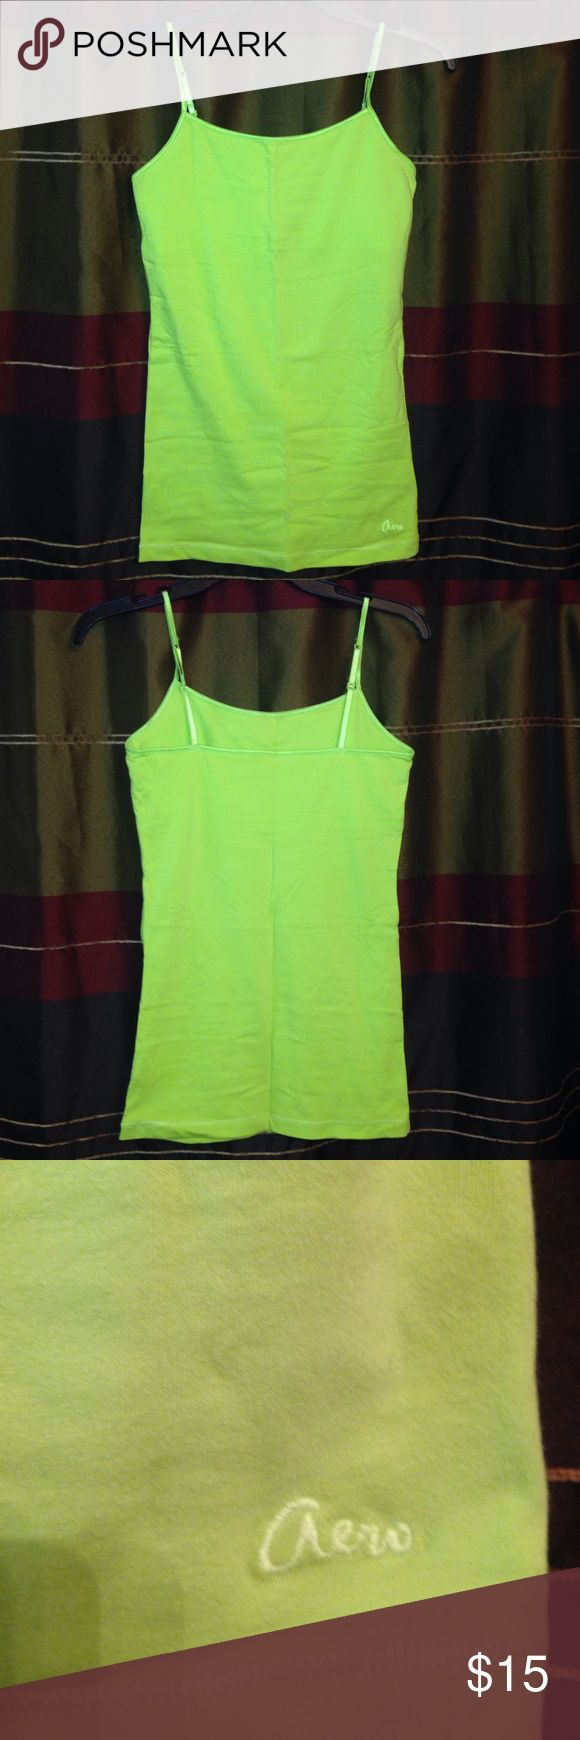 Green Cami Never worn. It's a little wrinkled because its been in a drawer for a while. Lime green cami Aeropostale Tops Camisoles